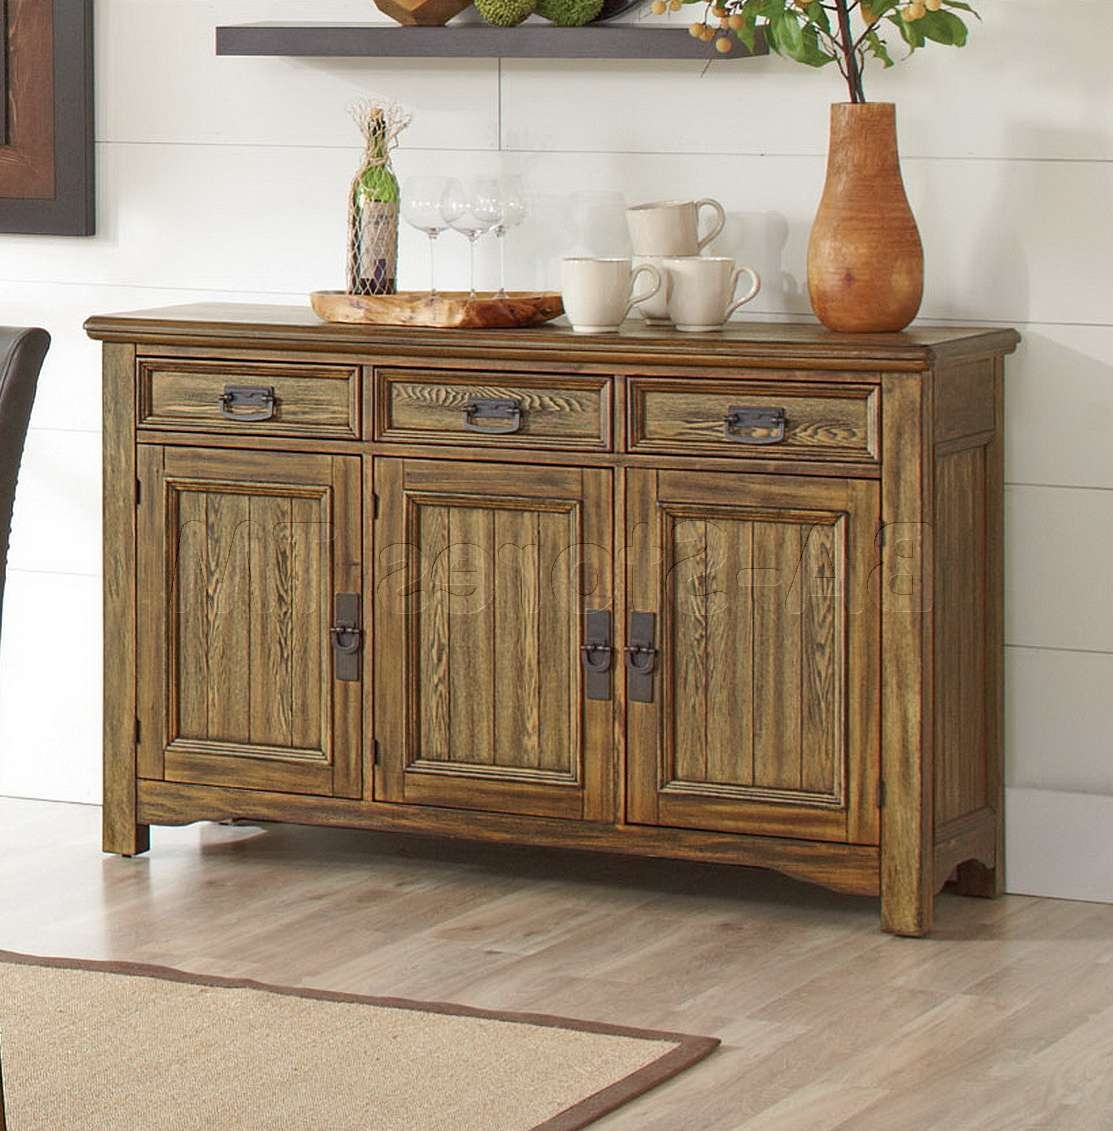 Kitchen Cabinet : Narrow Buffet Table 42 Inch Sideboard Modern Throughout 42 Inch Sideboards (View 10 of 20)